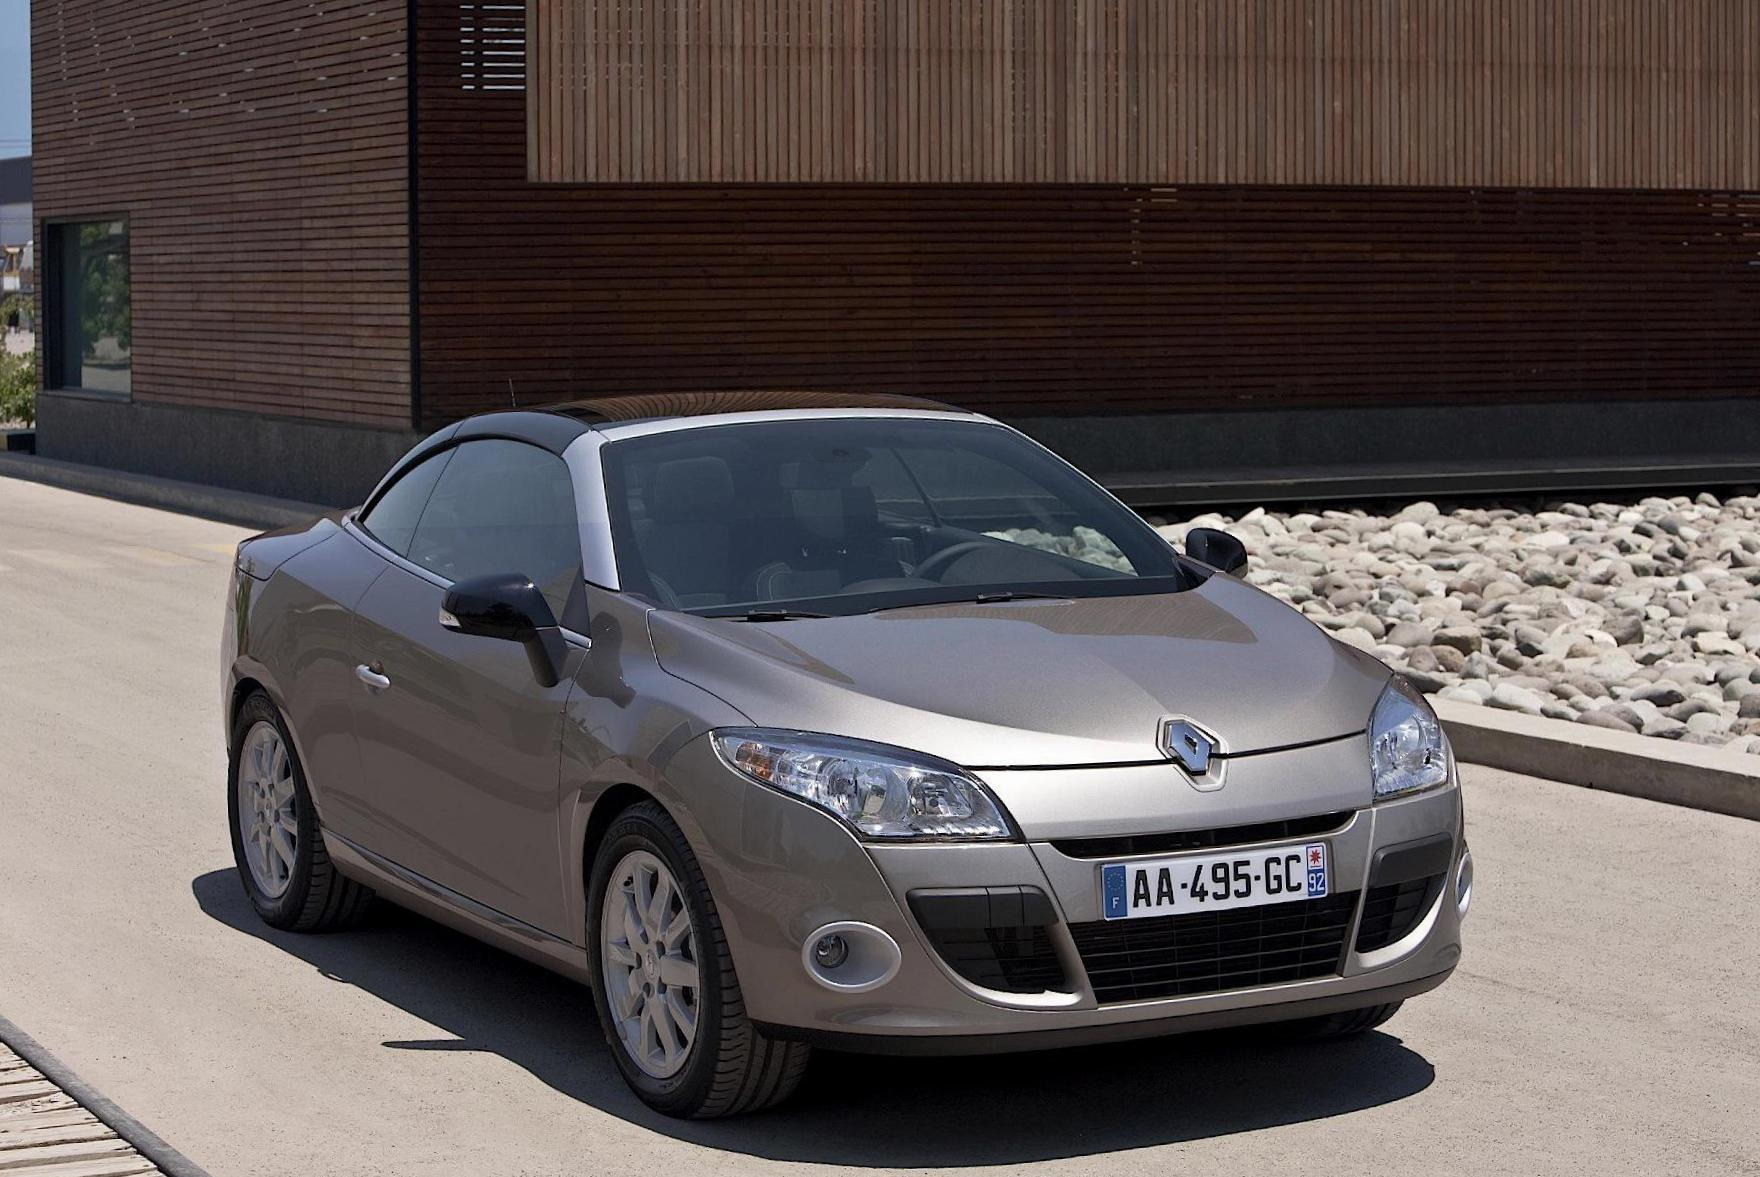 Megane Coupe Renault usa hatchback